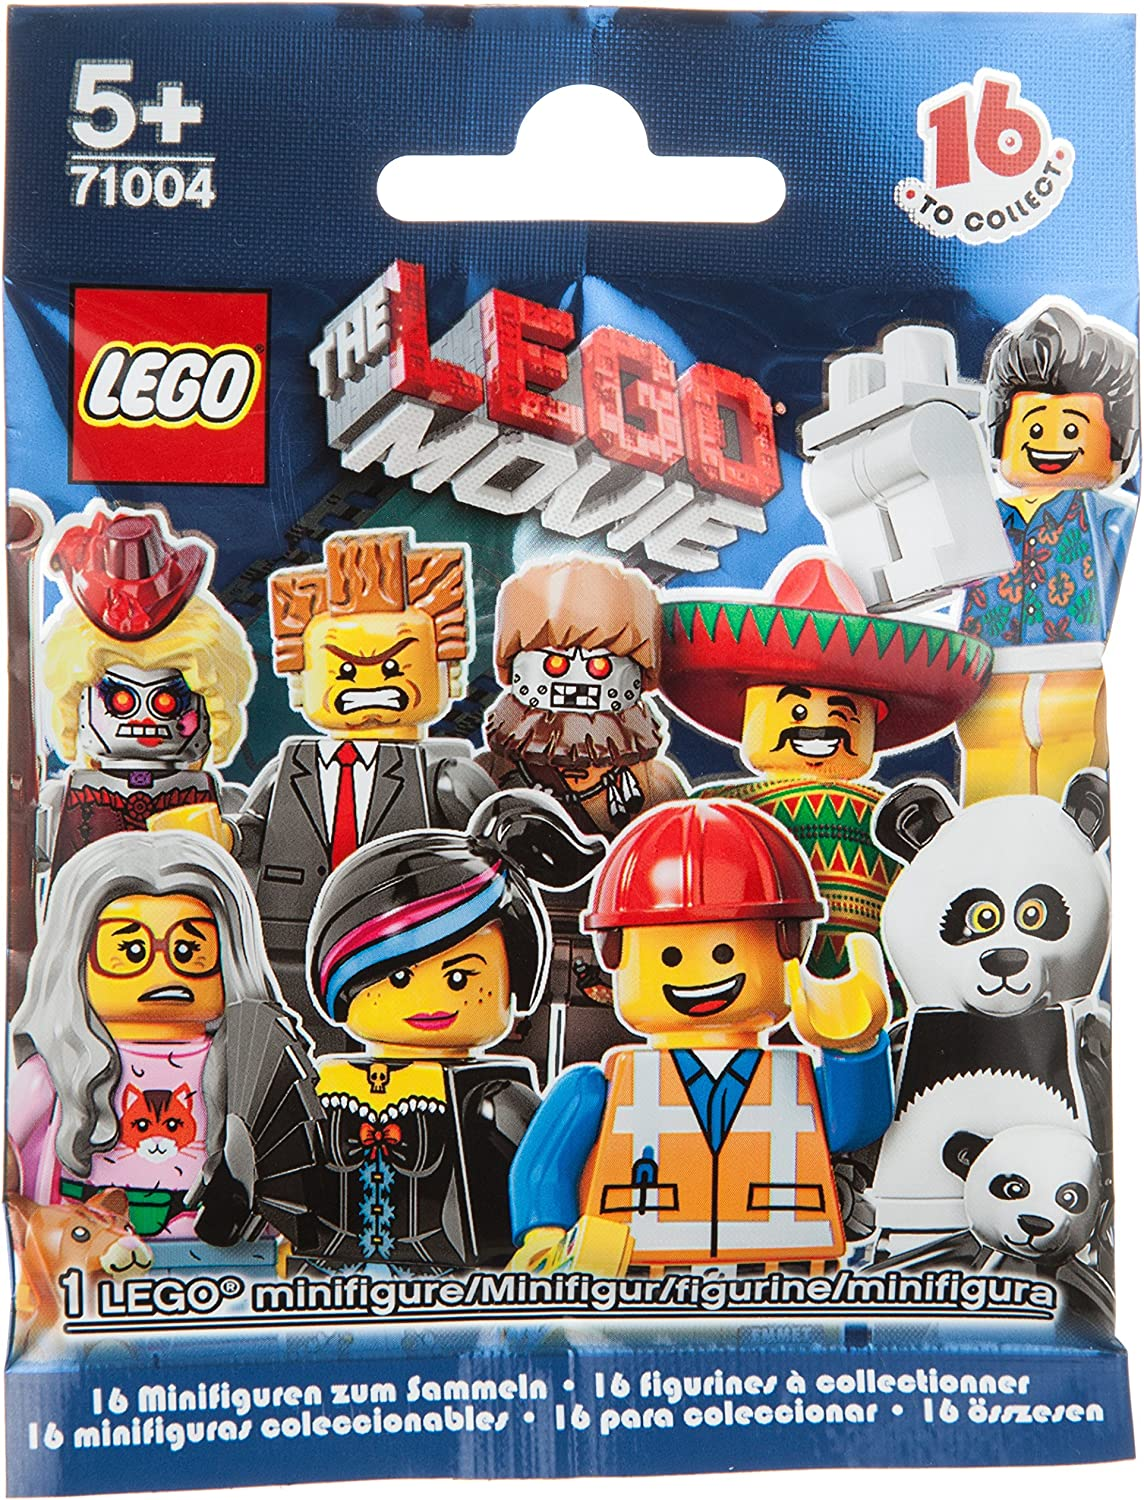 LEGO 71004 MINIFIGURE Movie Series COMPLETE SET of 16 figures w// tracking